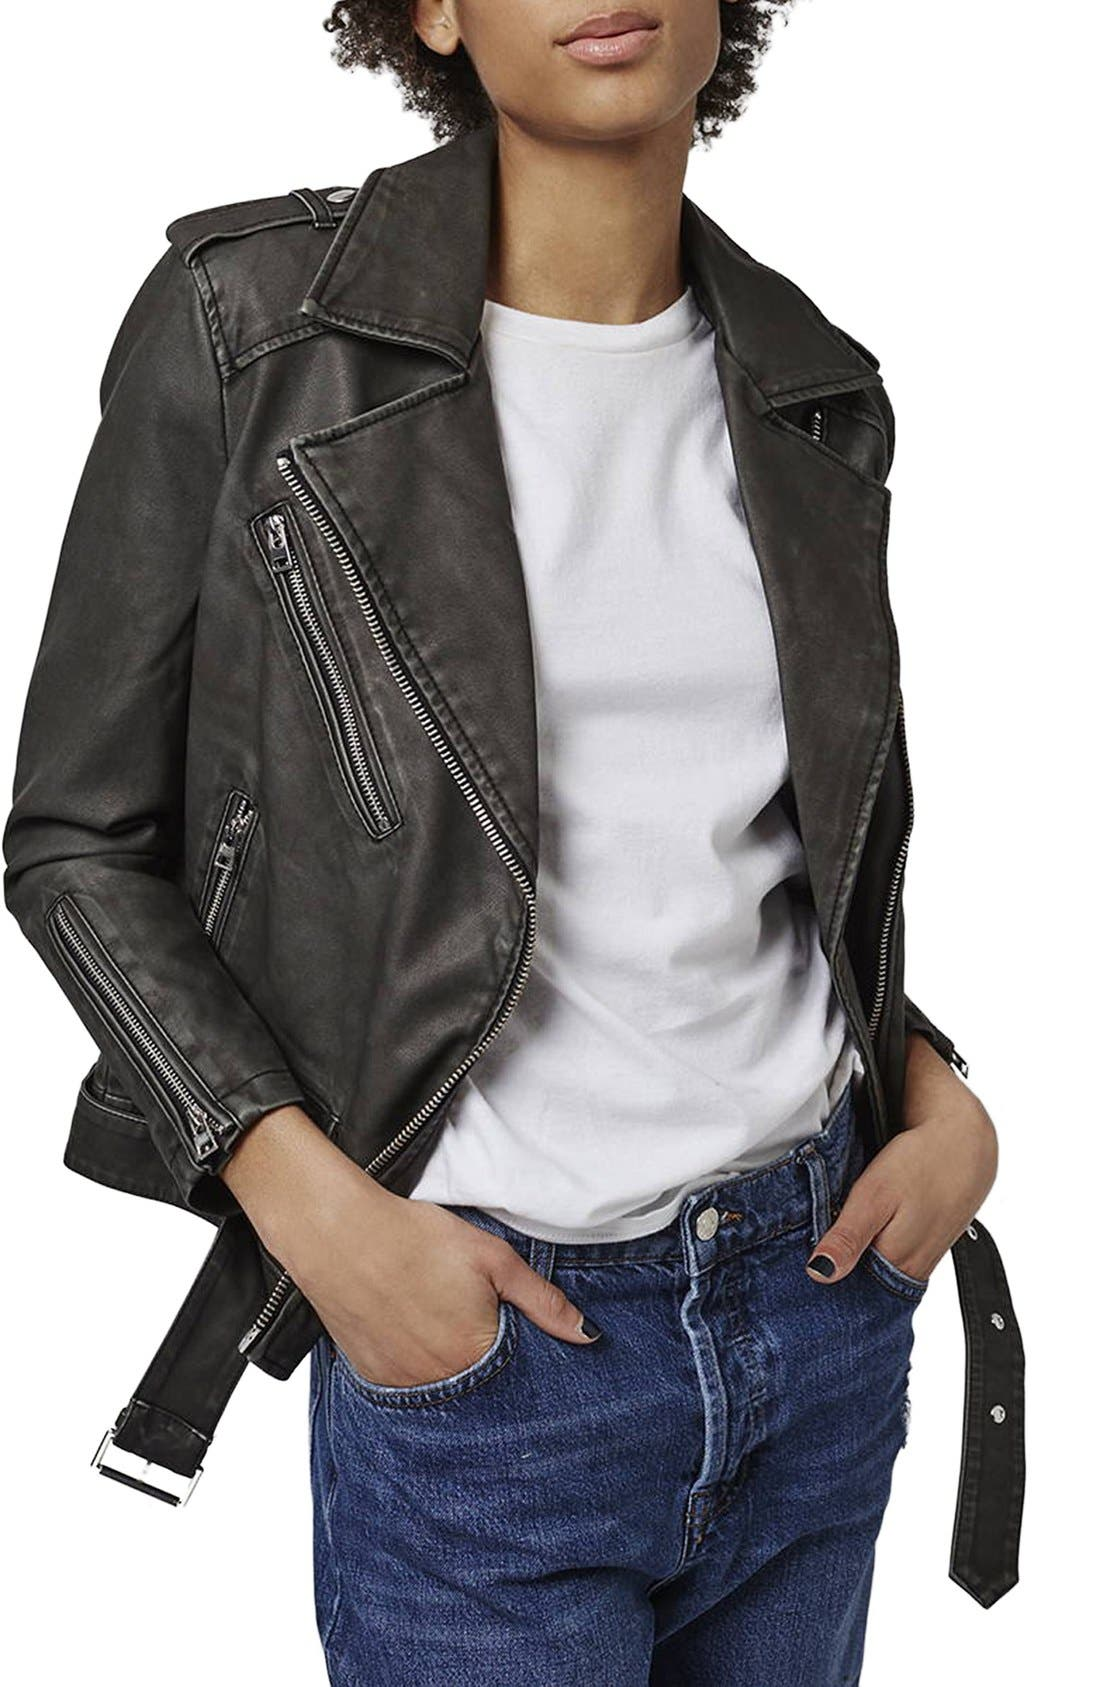 Alternate Image 1 Selected - Topshop 'Mahoney' Faux Leather Biker Jacket